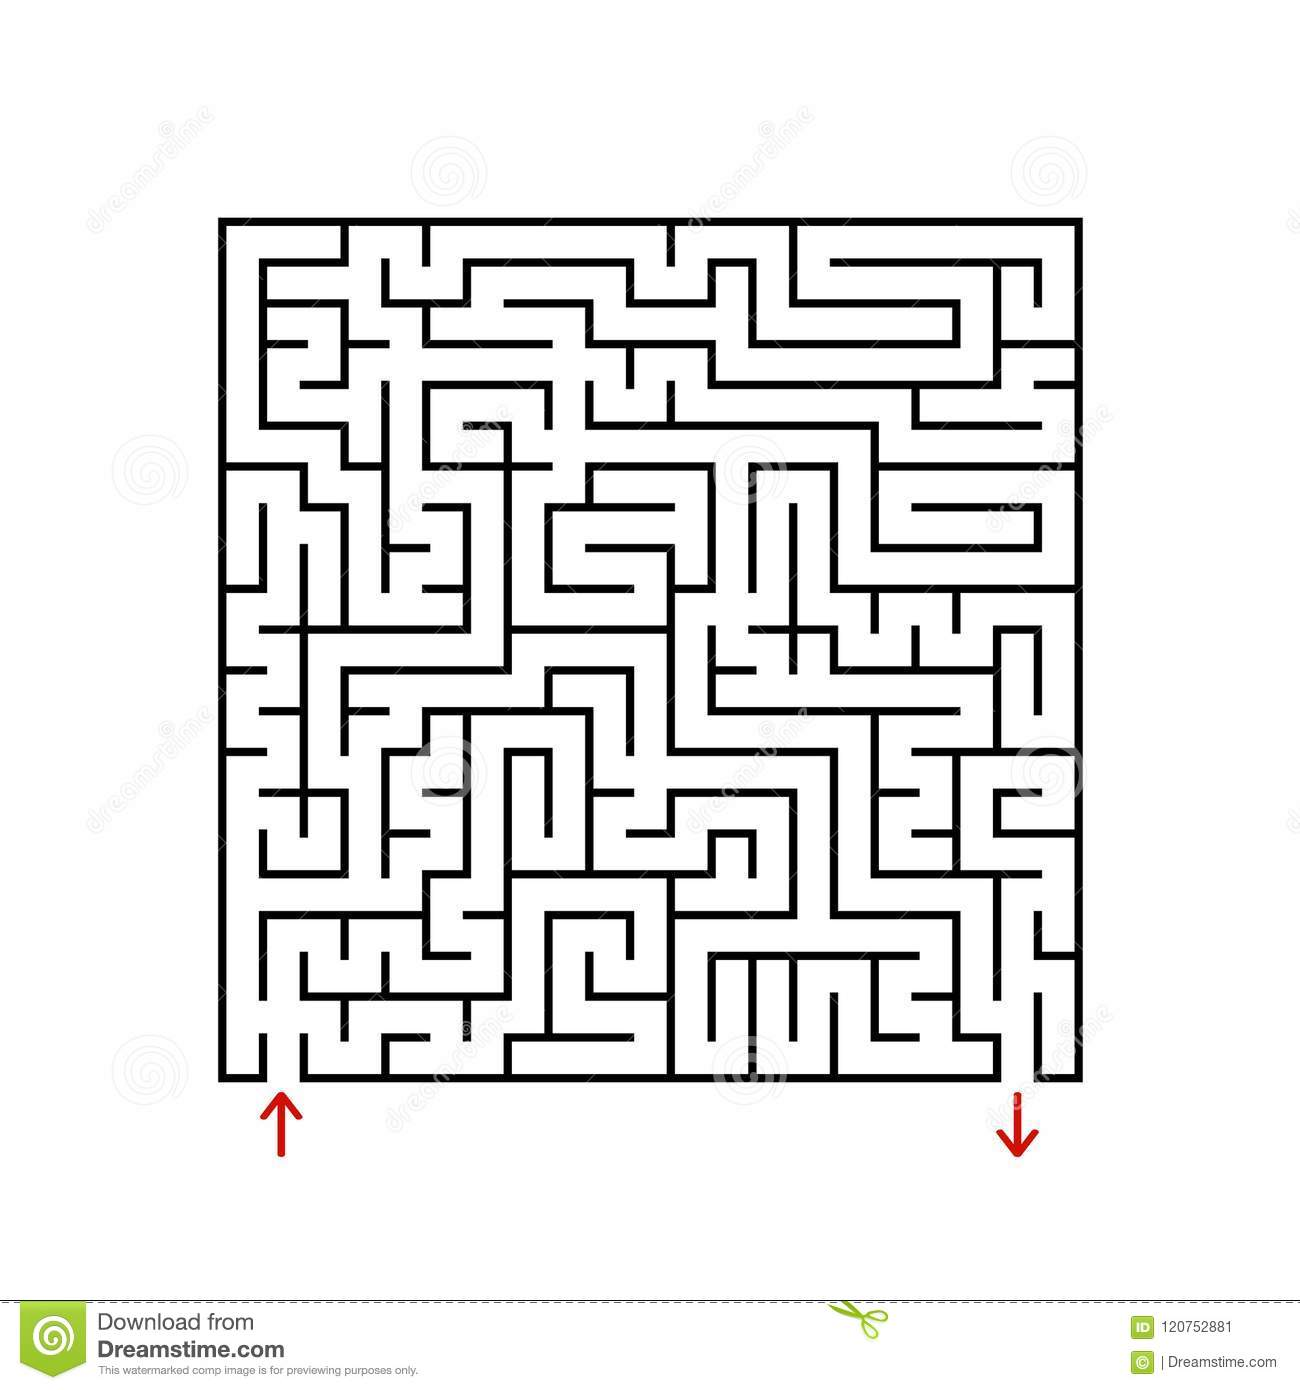 Black Square Maze With Entrance And Exit  A Game For Children And